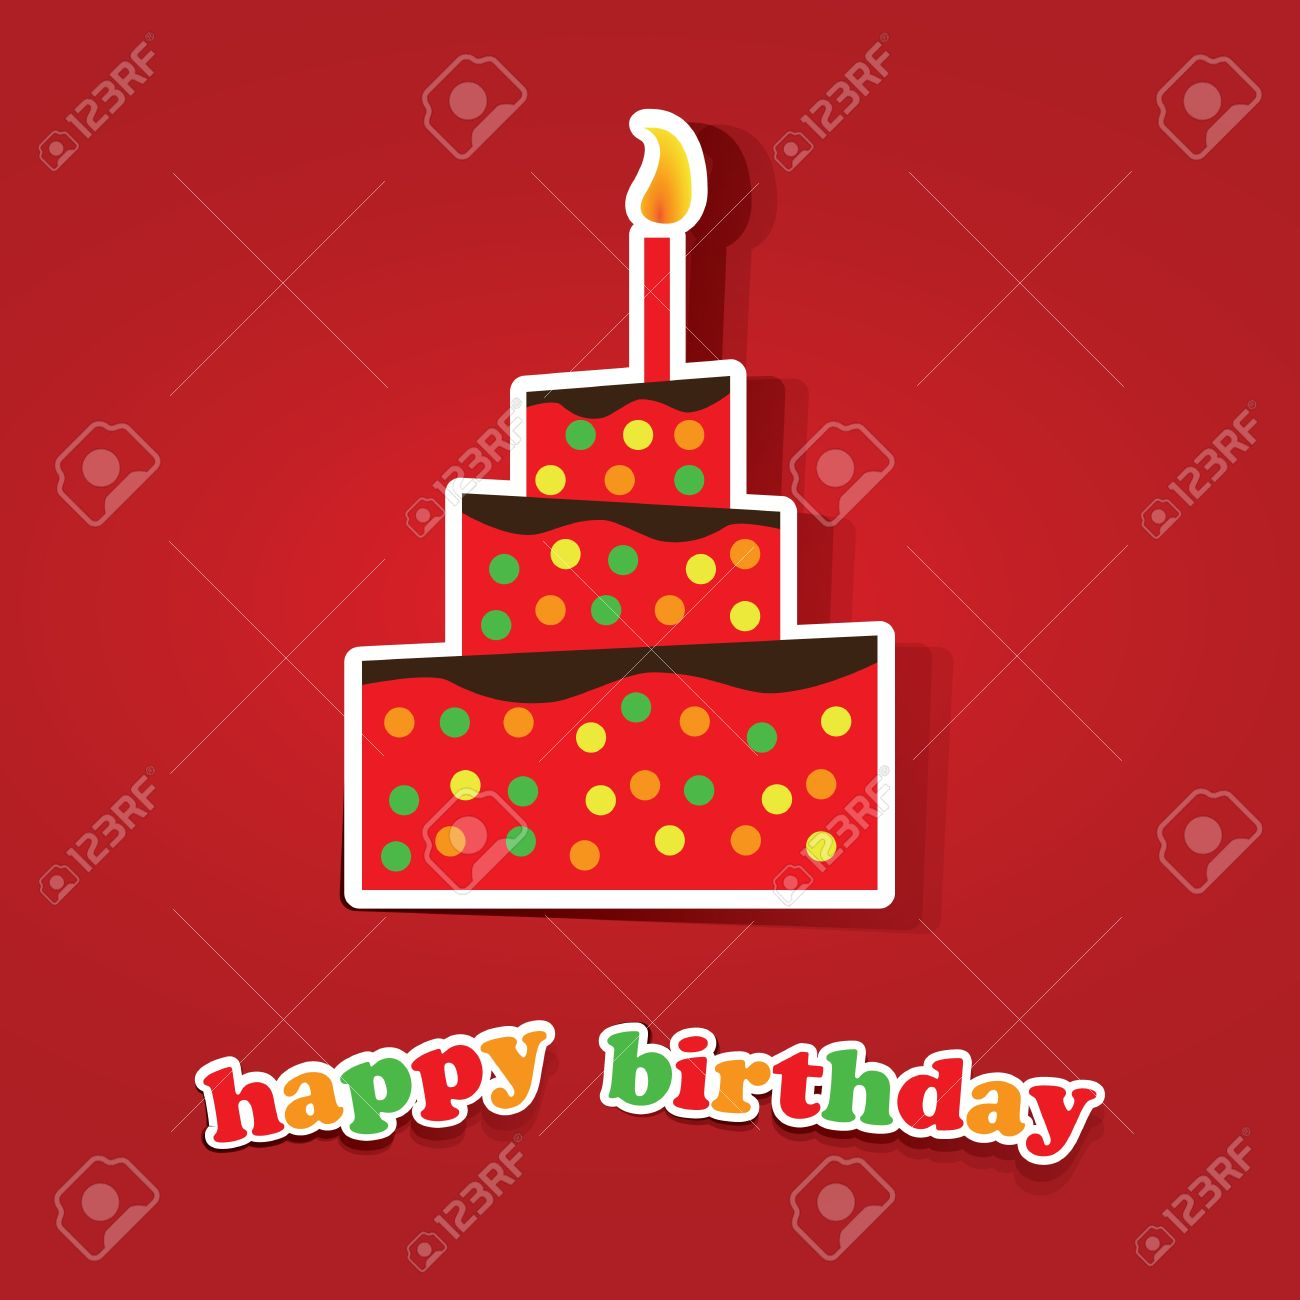 Birthday Card, Flyer or Cover Design Stock Vector - 15477838